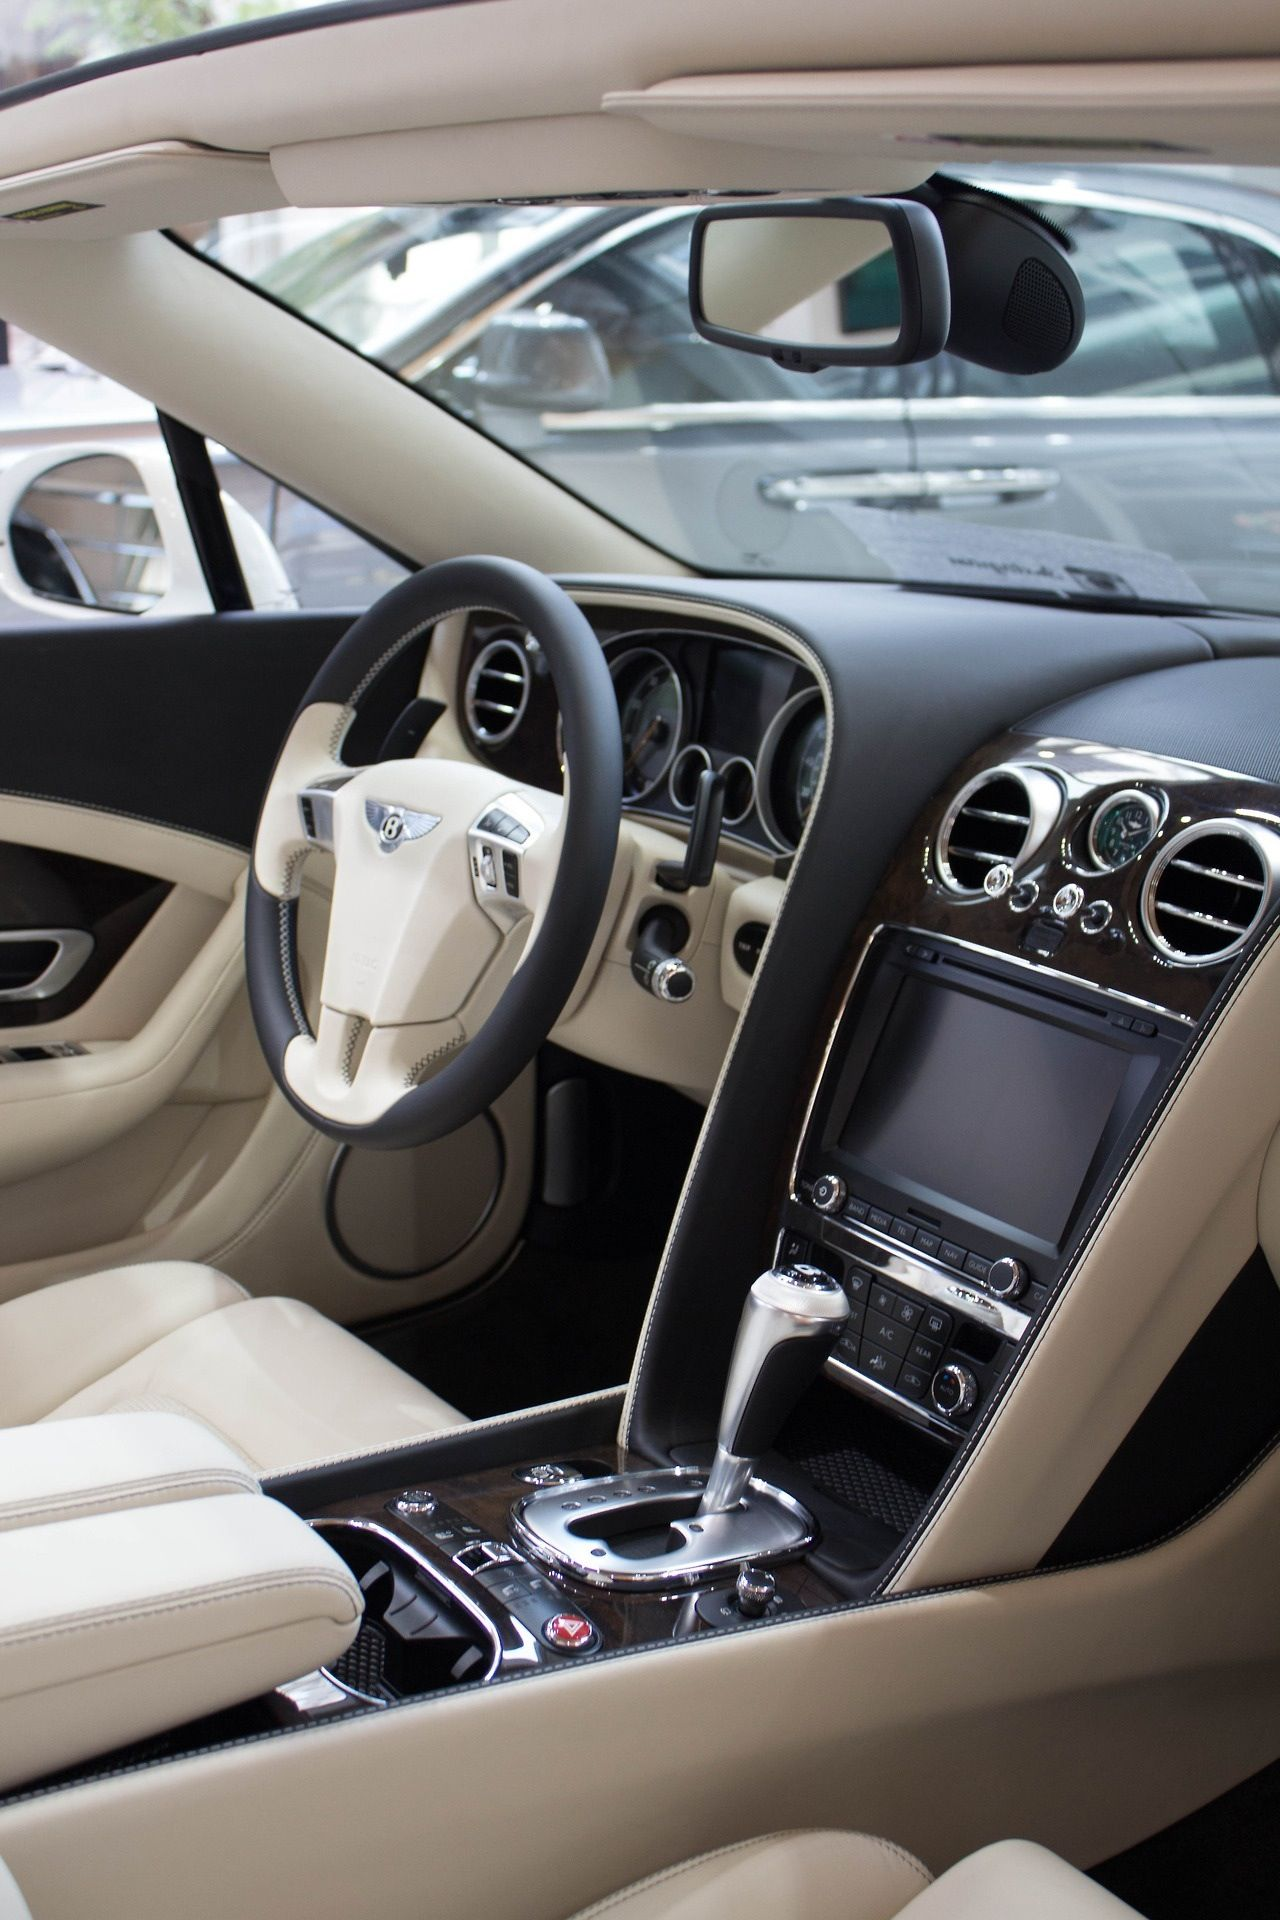 found price abandoned used doha of spur qatar in bentley cars a auto front car flying amazing